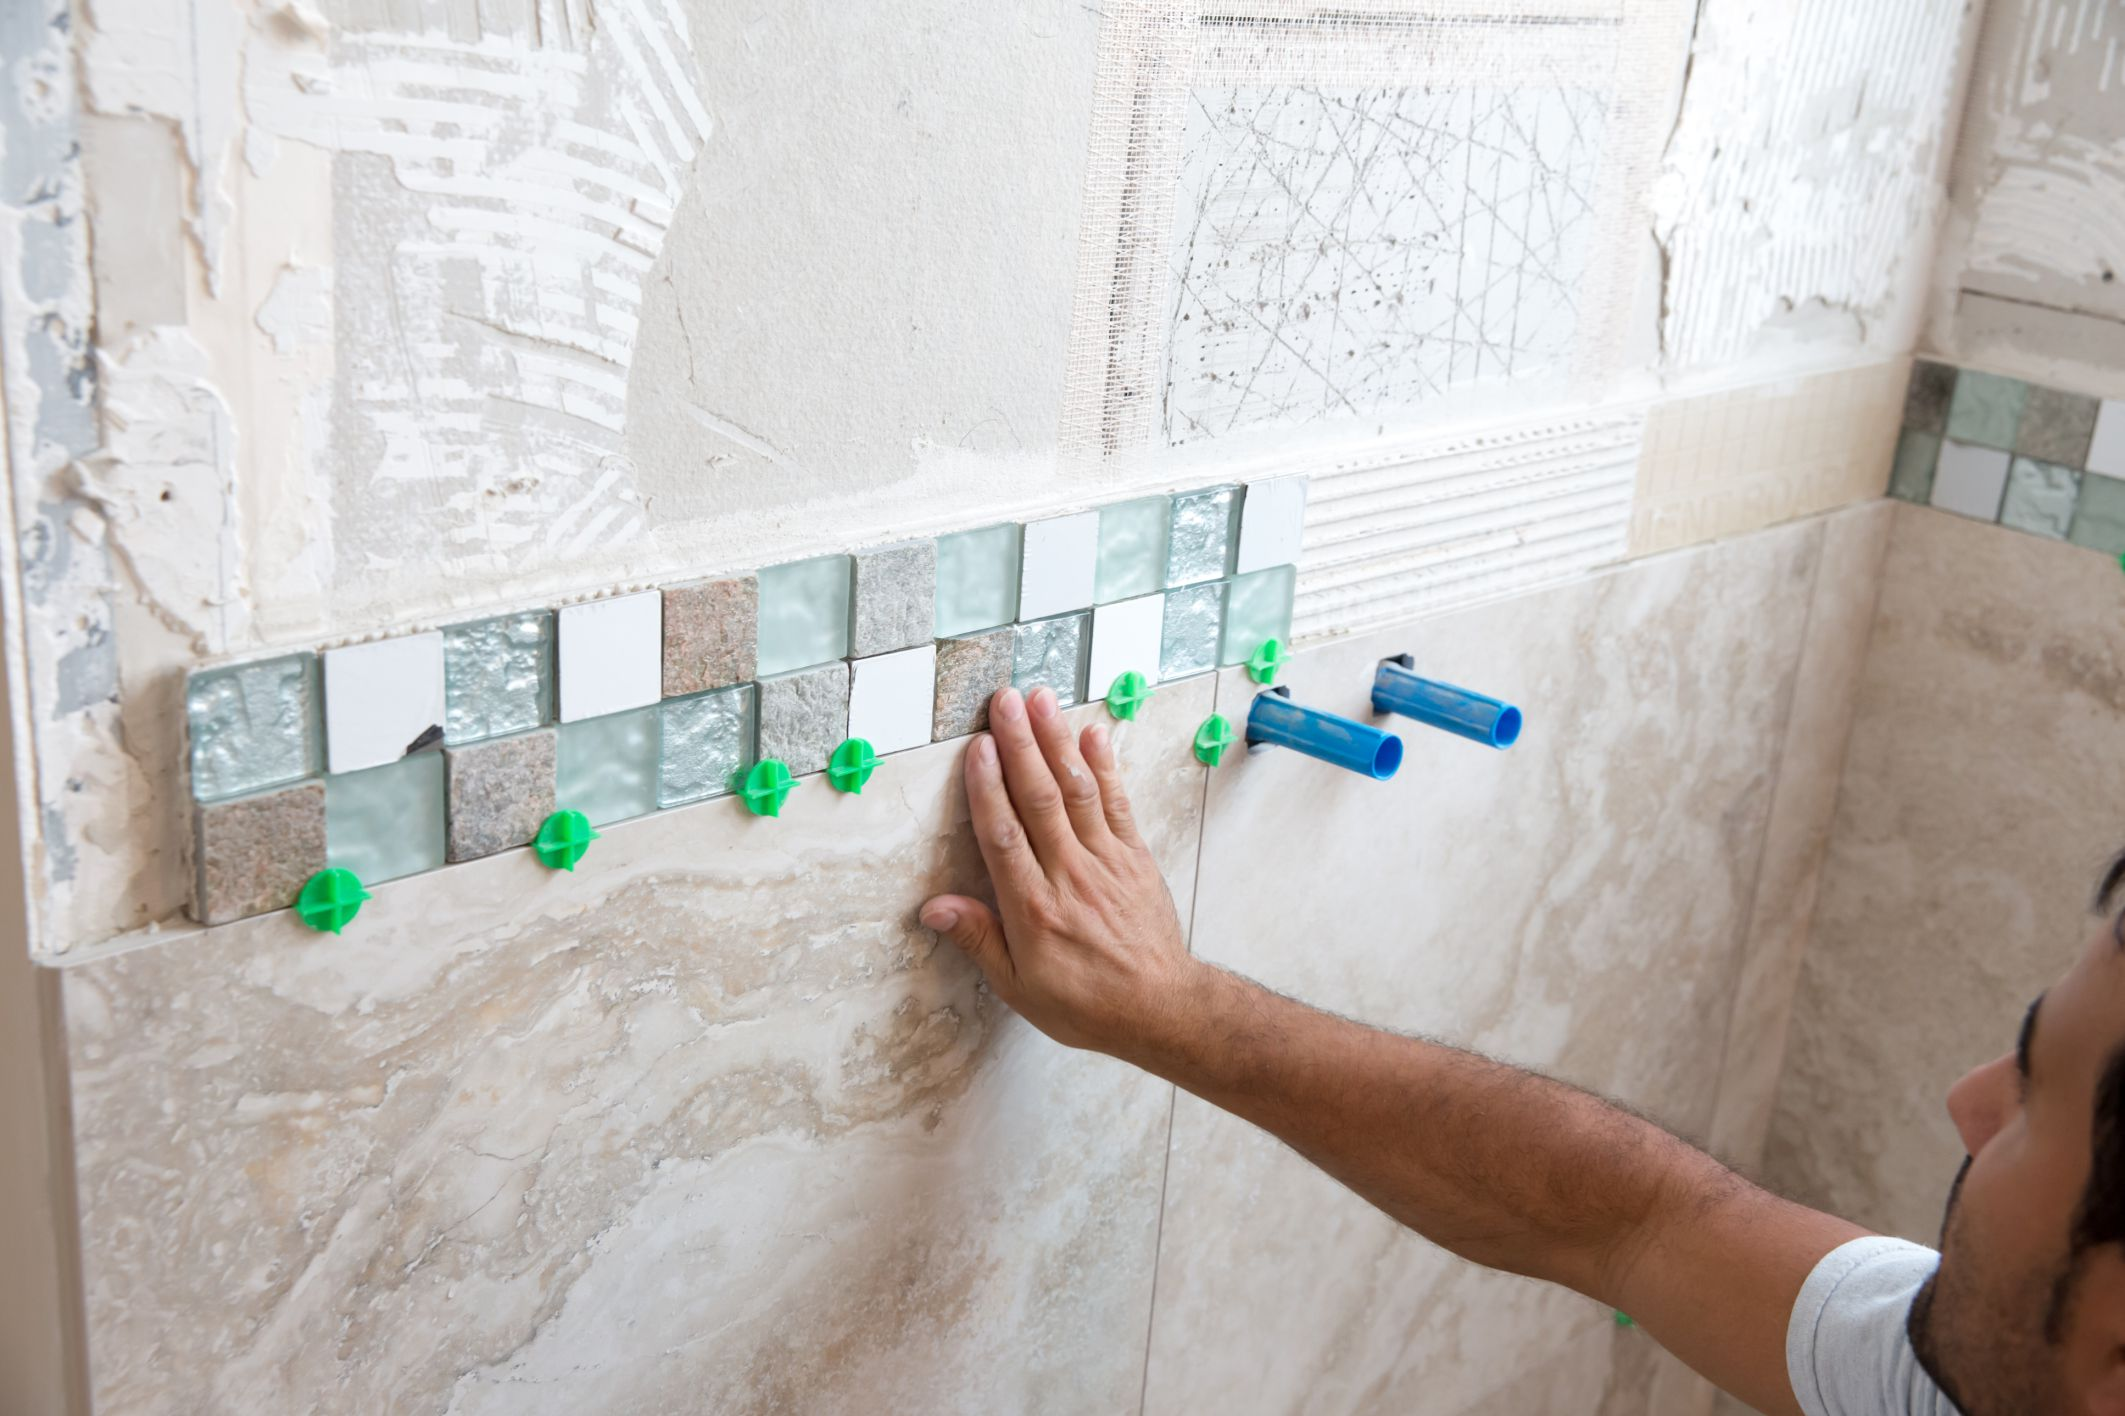 How To Convert An Acrylic Or Fiberglass Shower To Tile